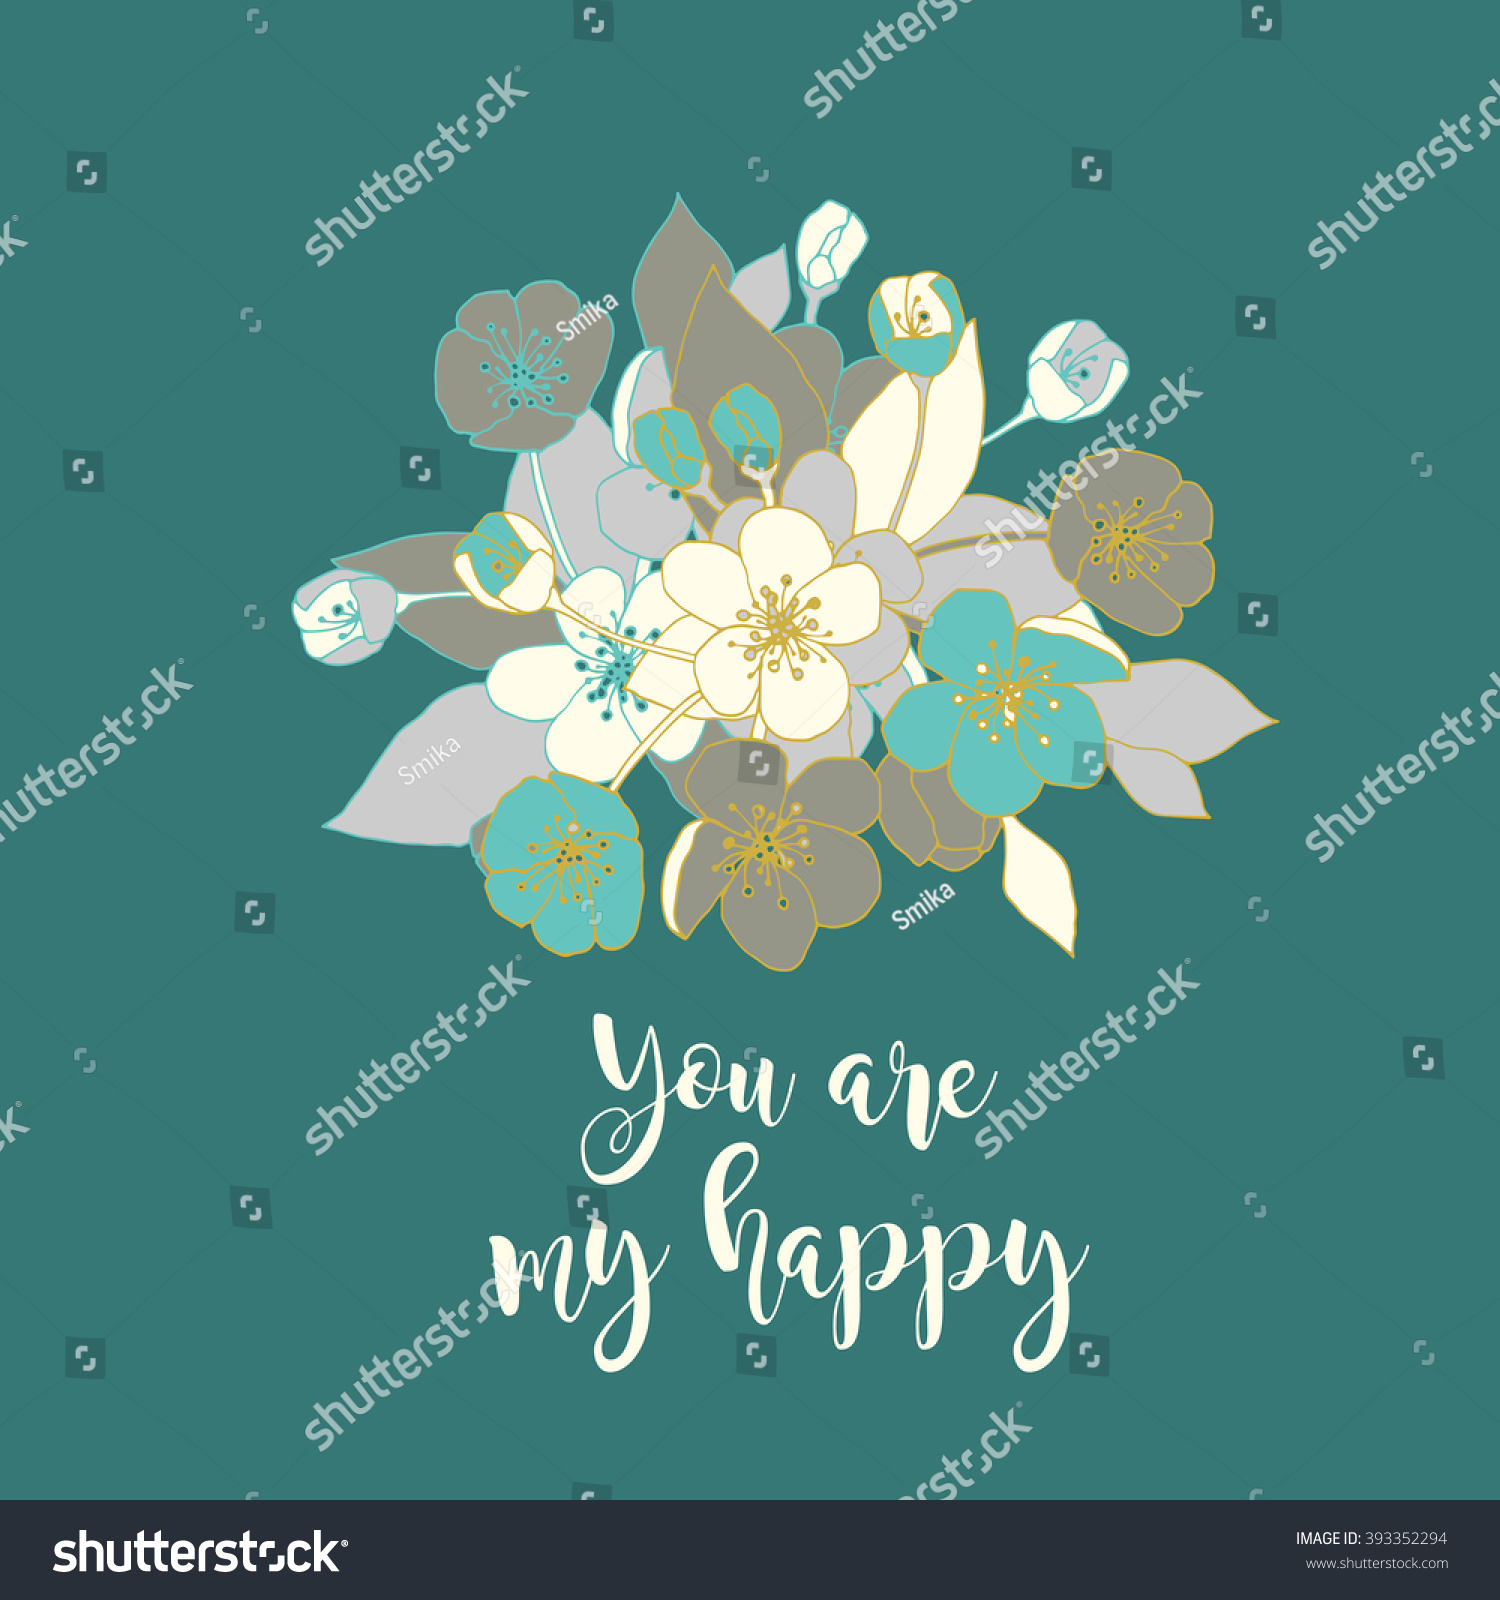 Greeting cards apple flowers stock vector 393352294 shutterstock greeting cards with apple flowers m4hsunfo